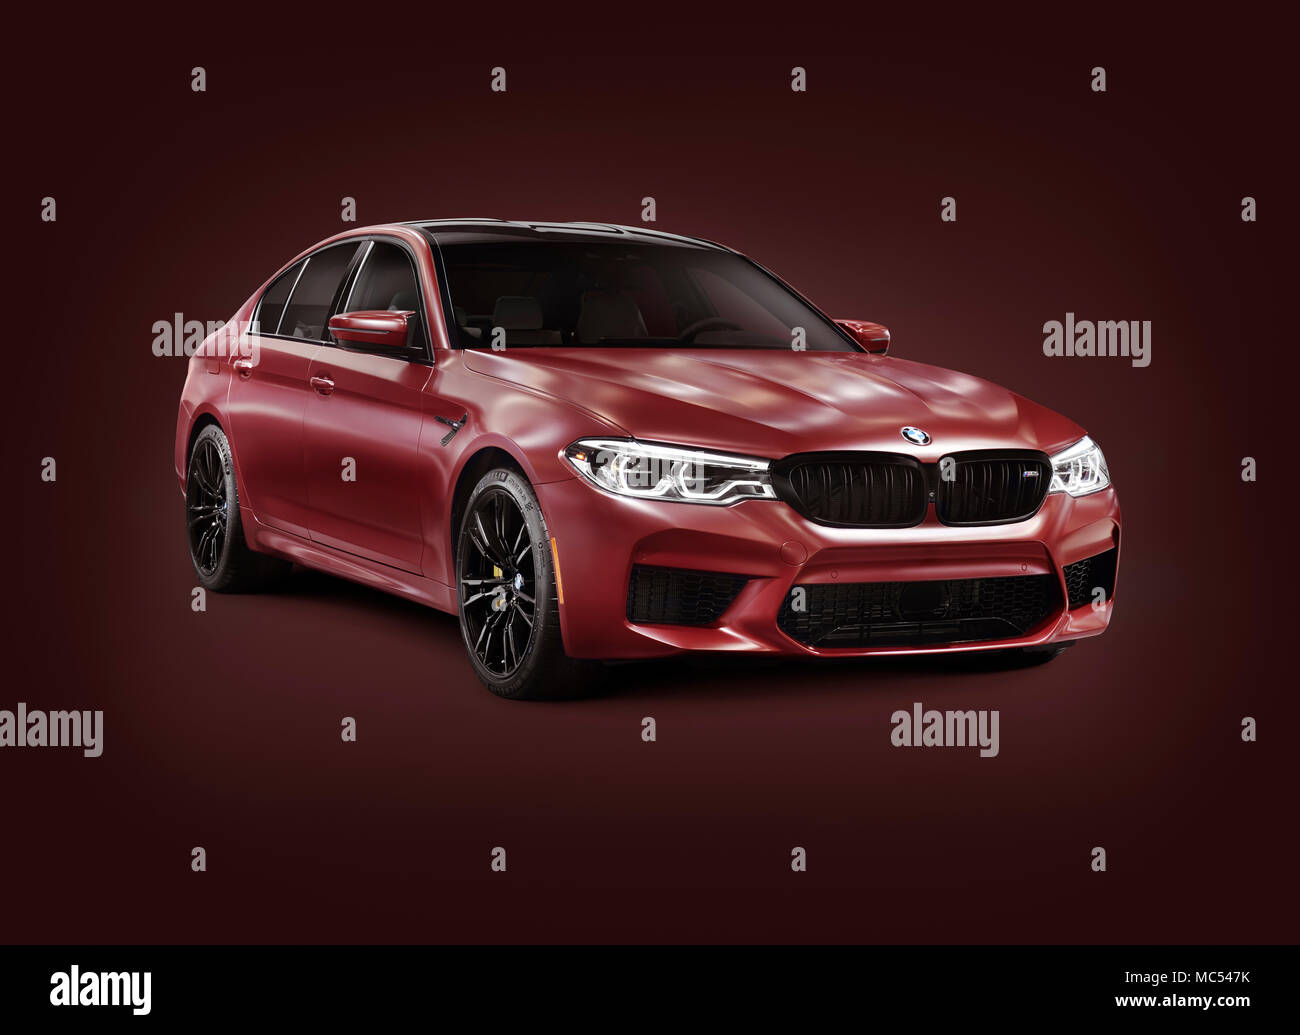 Sixth Generation Bmw M5 2018 Performance Car Luxury Sport Sedan 5 Series In Dark Red Matte Color Isolated With A Clipping Path On Burgundy Backgro Stock Photo Alamy